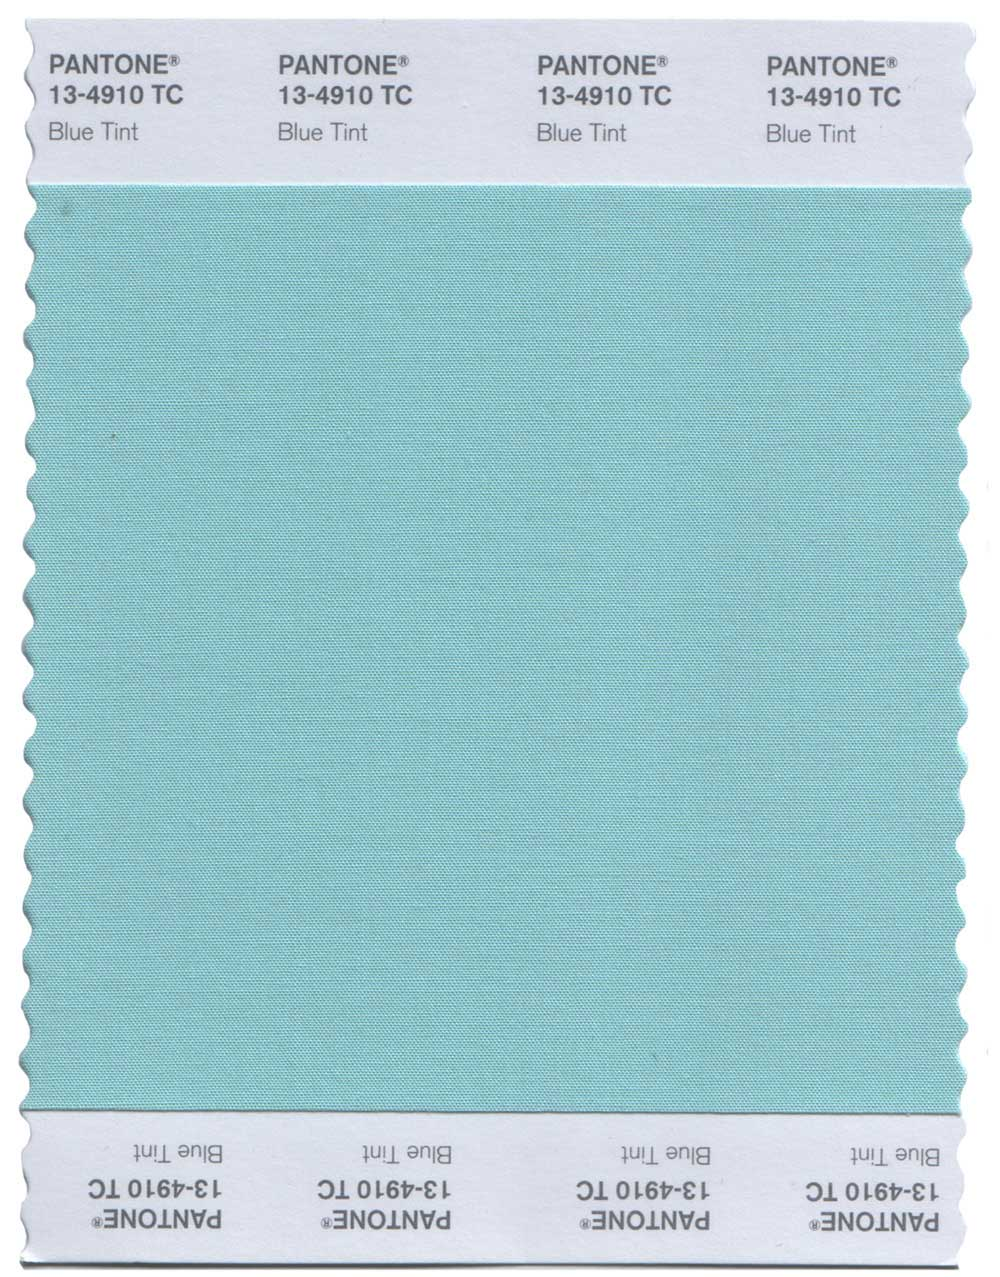 Pantone Original Swatch 18-1537 Copper Coin